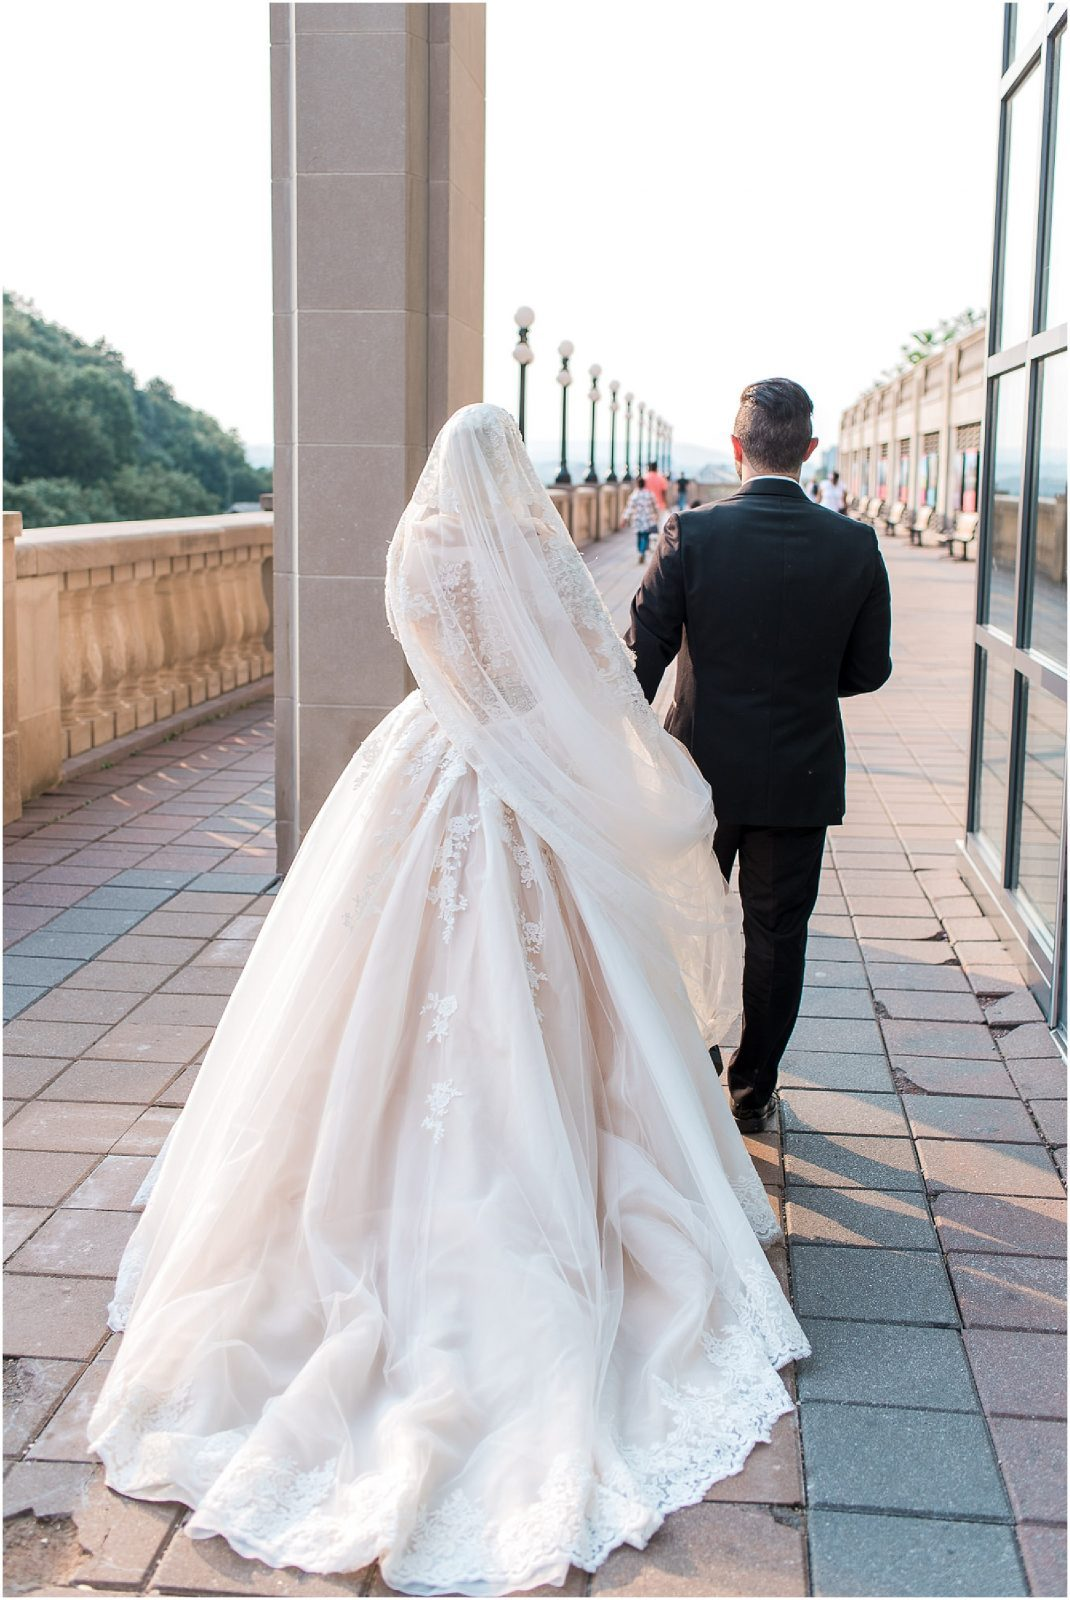 0036 Chateau Laurier Wedding - Hijabi Bride - Sireen & Anas- Ottawa_PhotosbyEmmaH.jpg